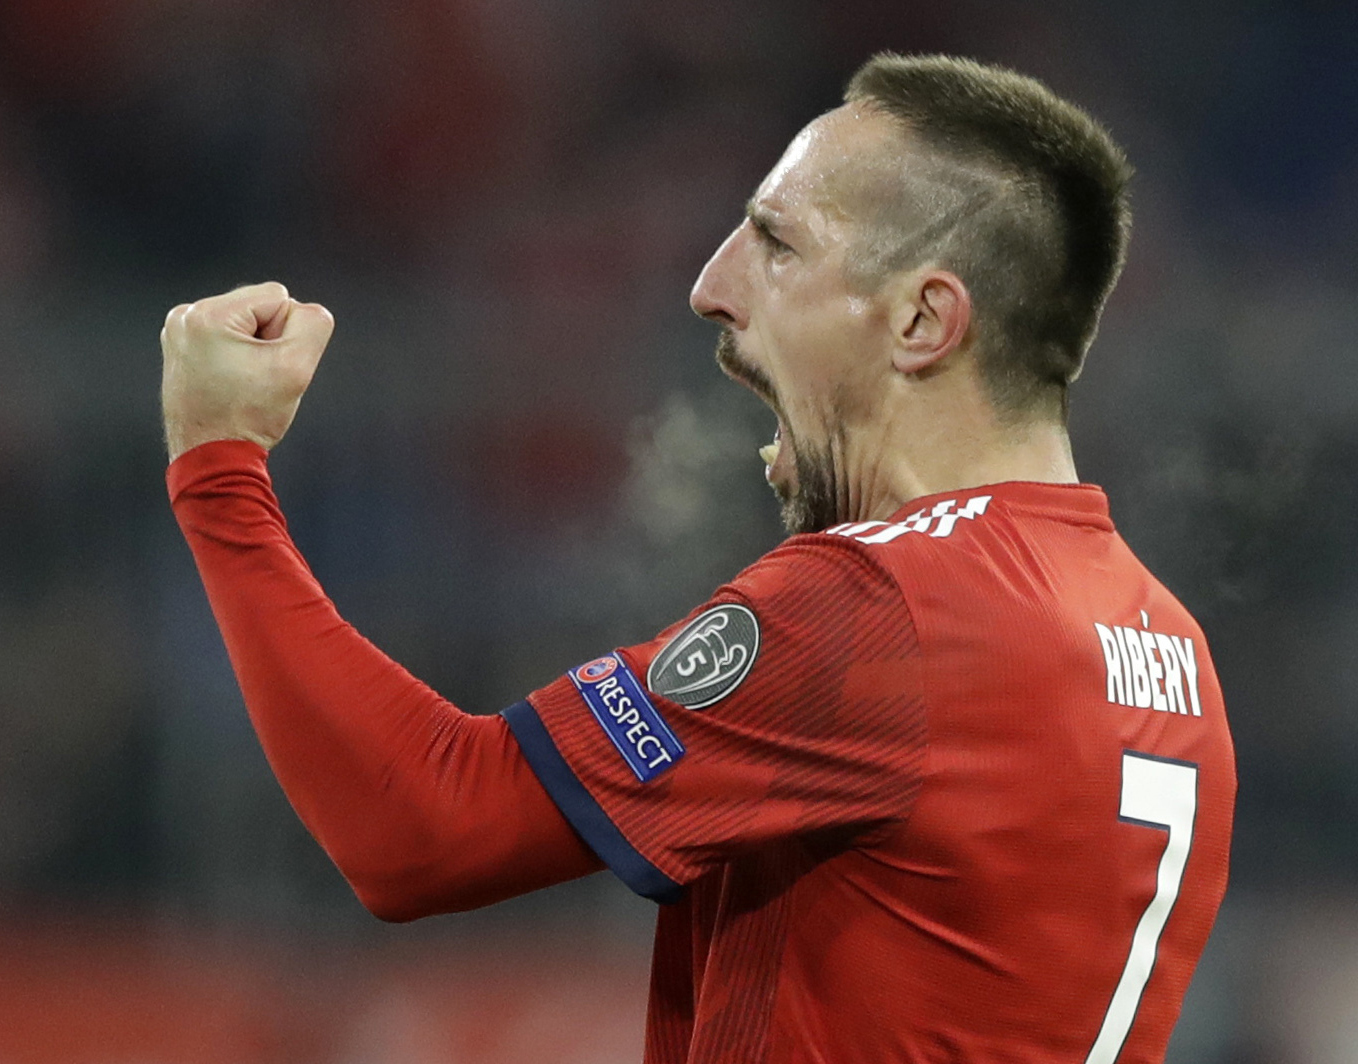 Bayern veteran Franck Ribery injured in training game